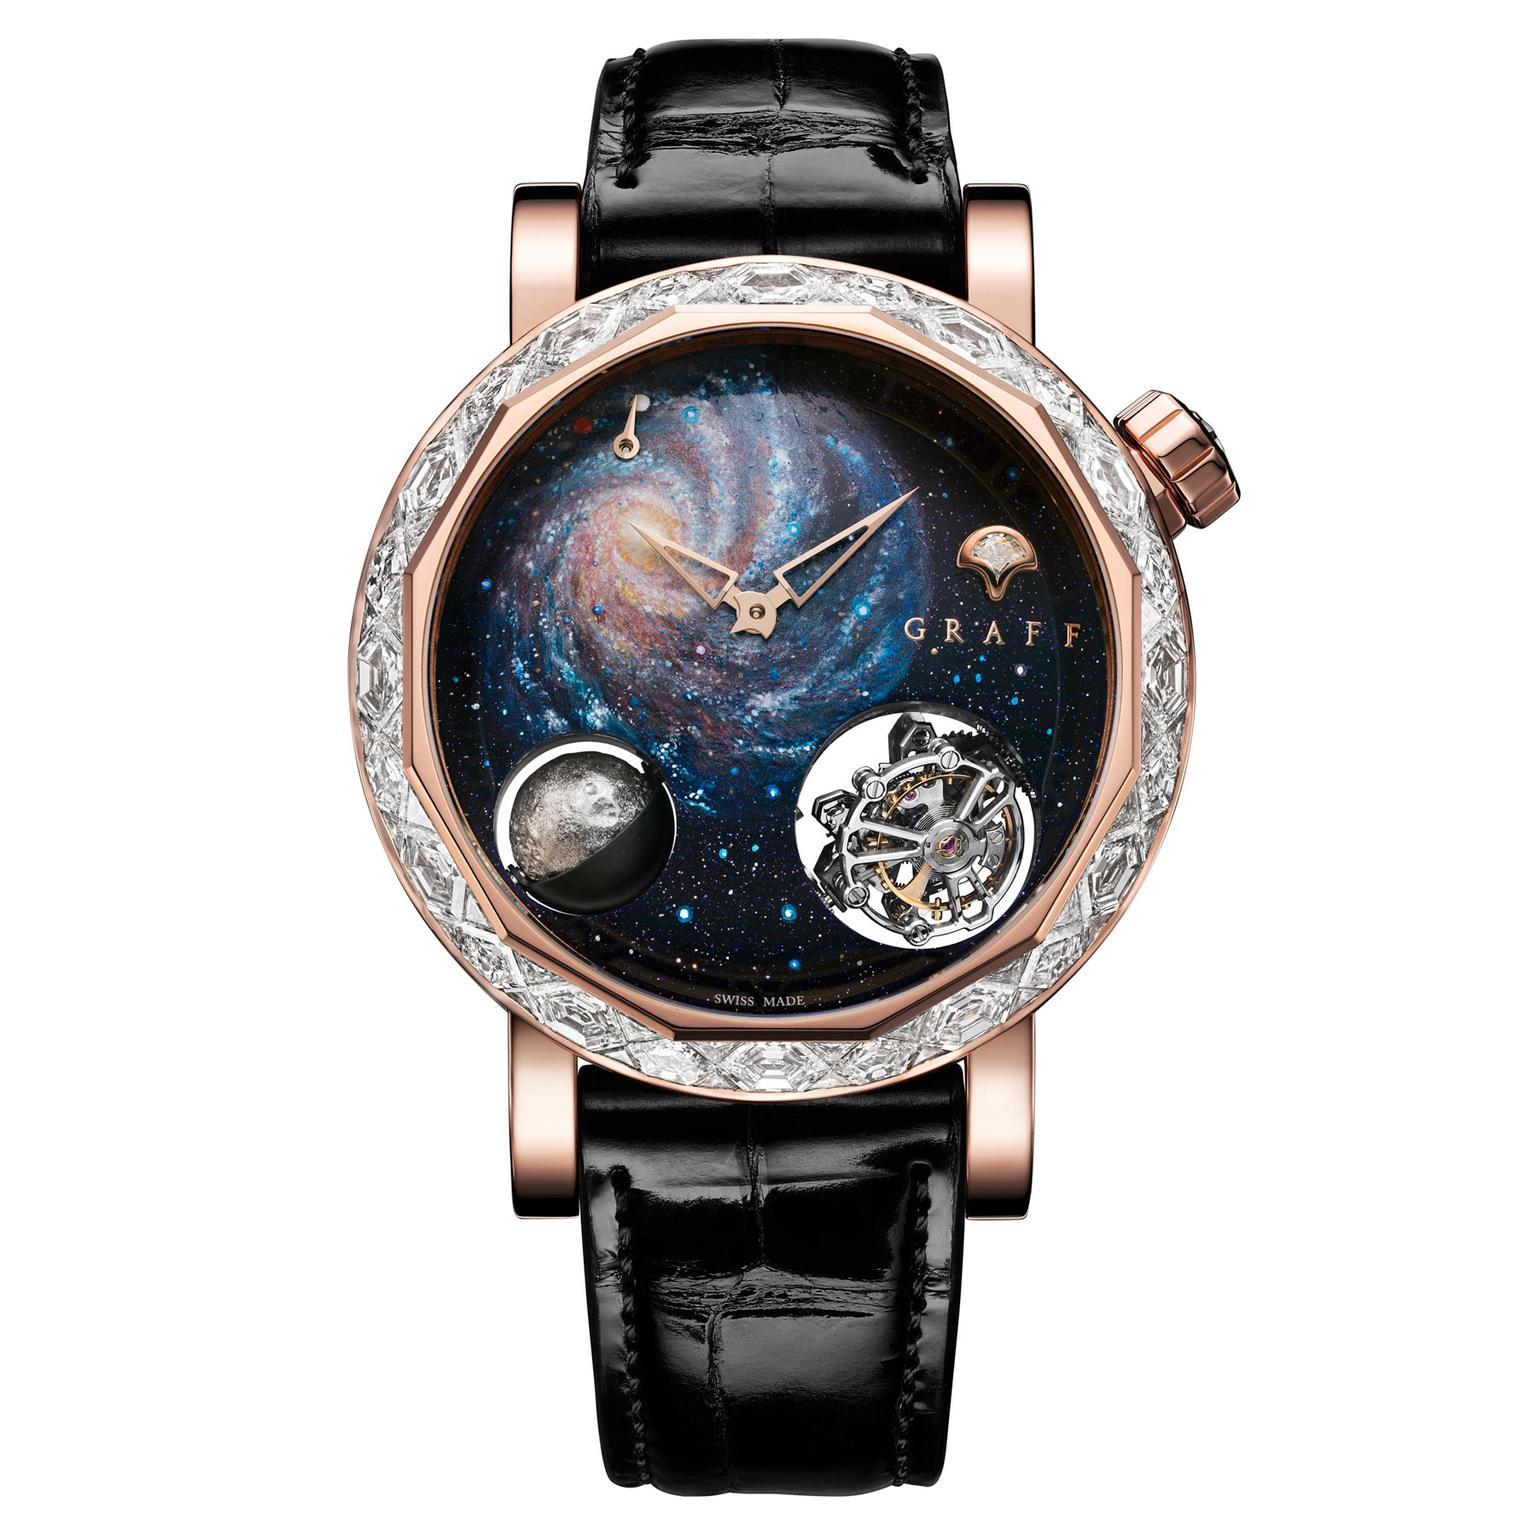 Graff GyroGraff Galaxy watch